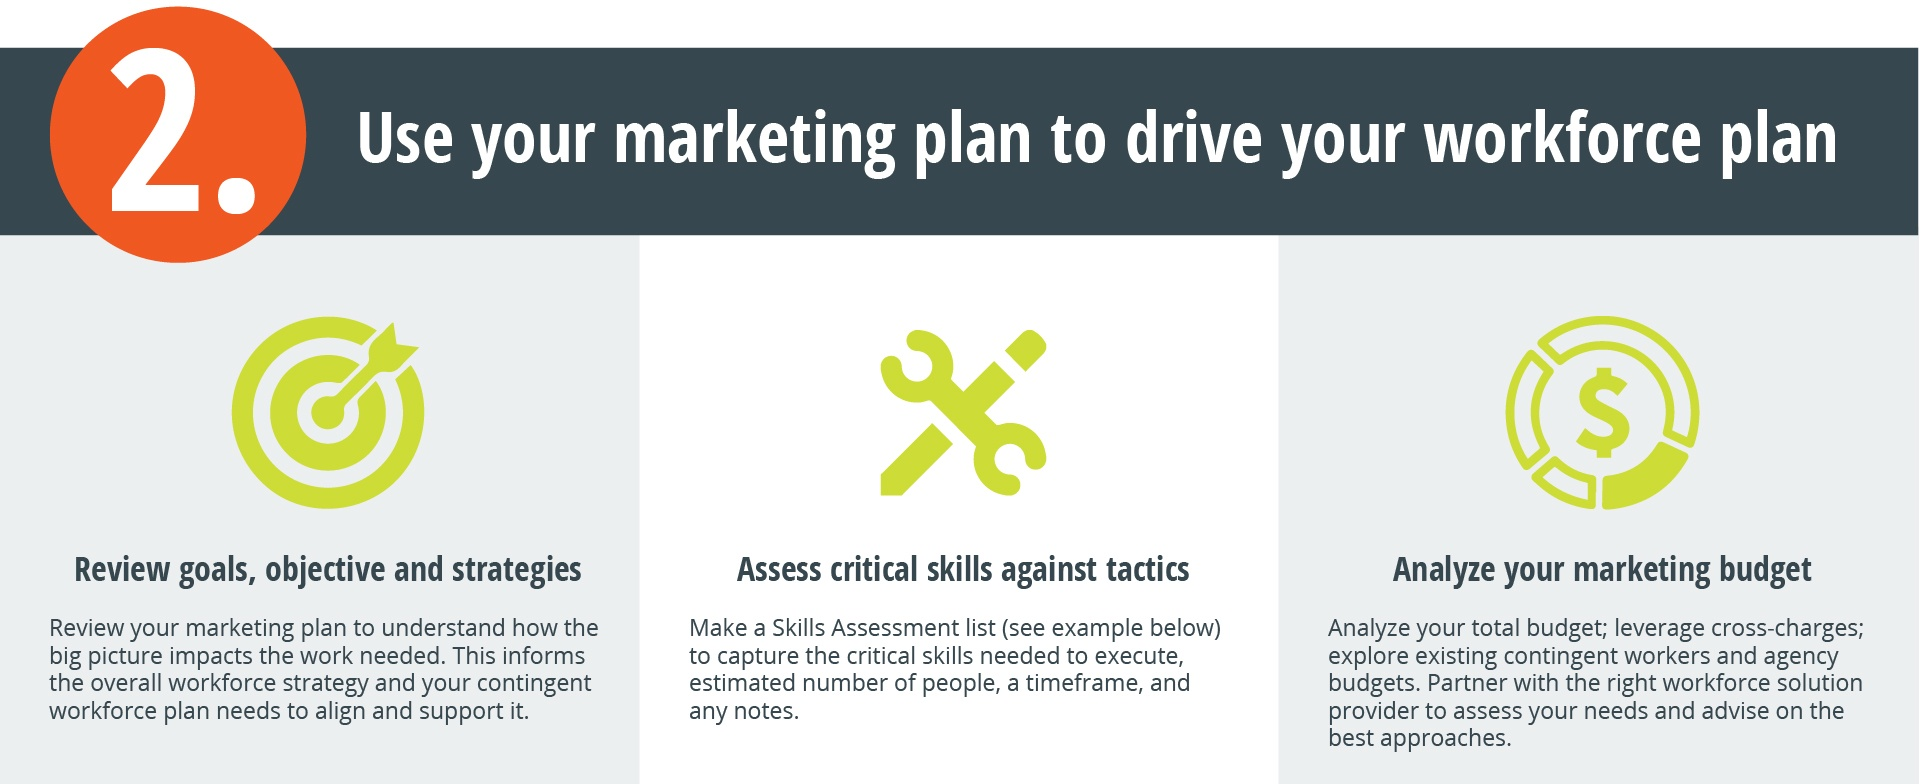 Use your marketing plan to drive your workforce plan